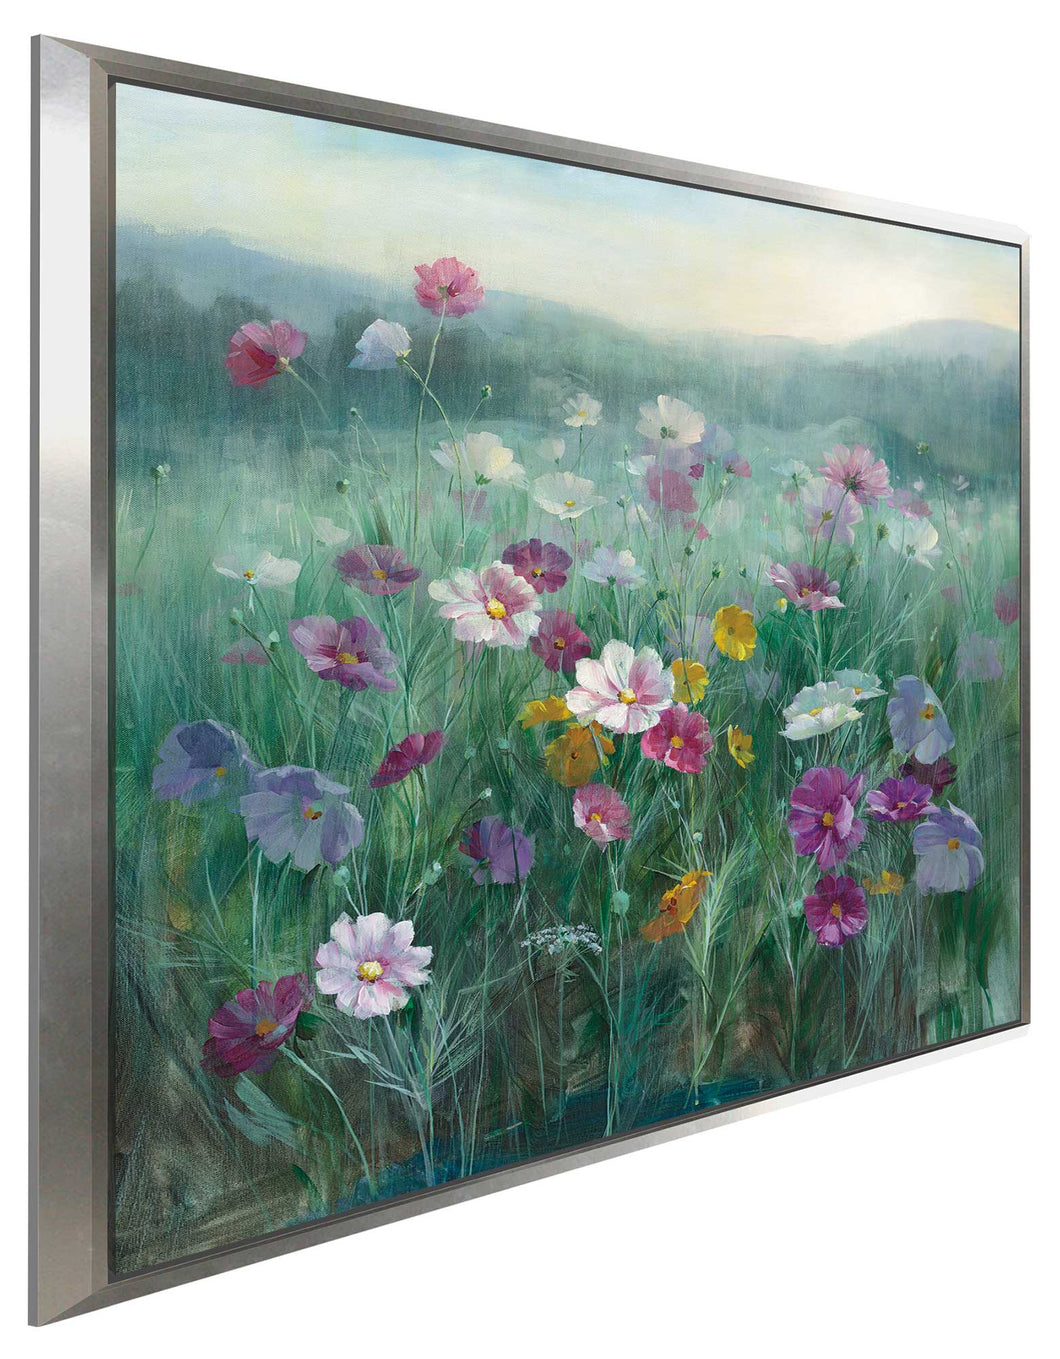 Cosmos at Dawn Print on Canvas in Floating Frame Floral,Green art,Square Shape,All Floating Canvas,Danhui Nai